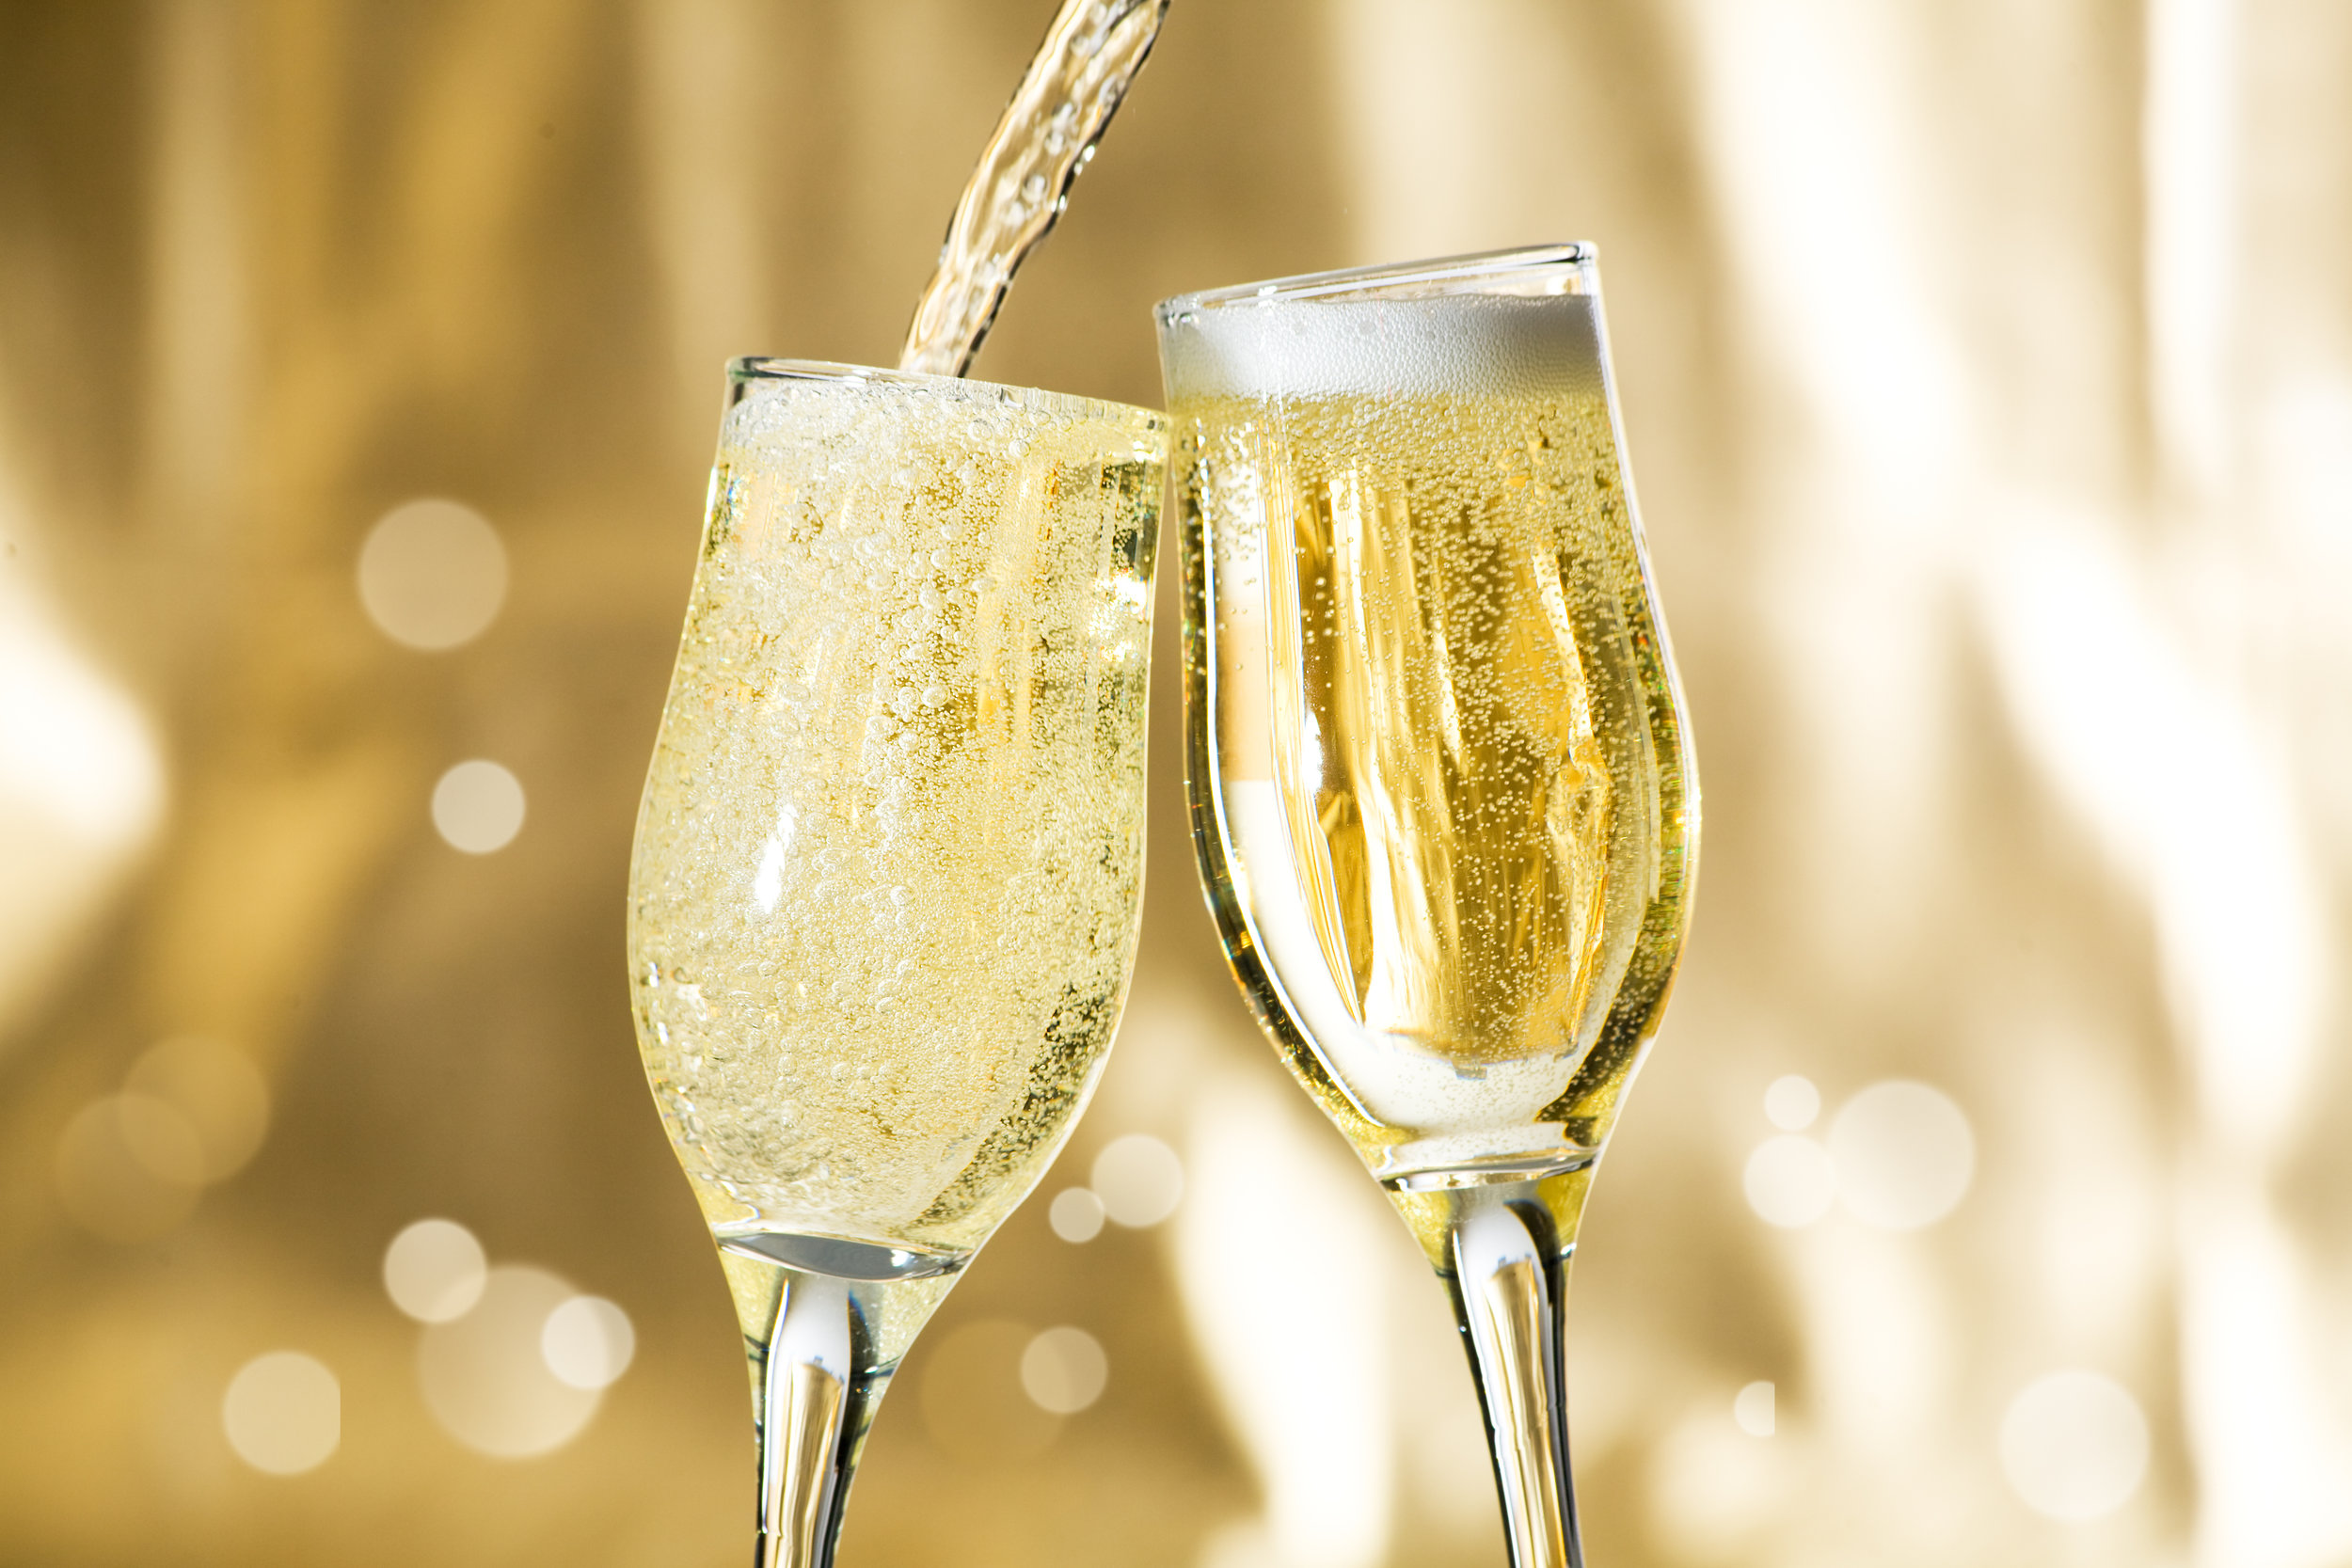 Everyone Wins! Enjoy bubbly champagne in your very own Stokes Nature Center wine glass and be entered to win fabulous prizes.  Four rounds of prizes worth $700 - $1800